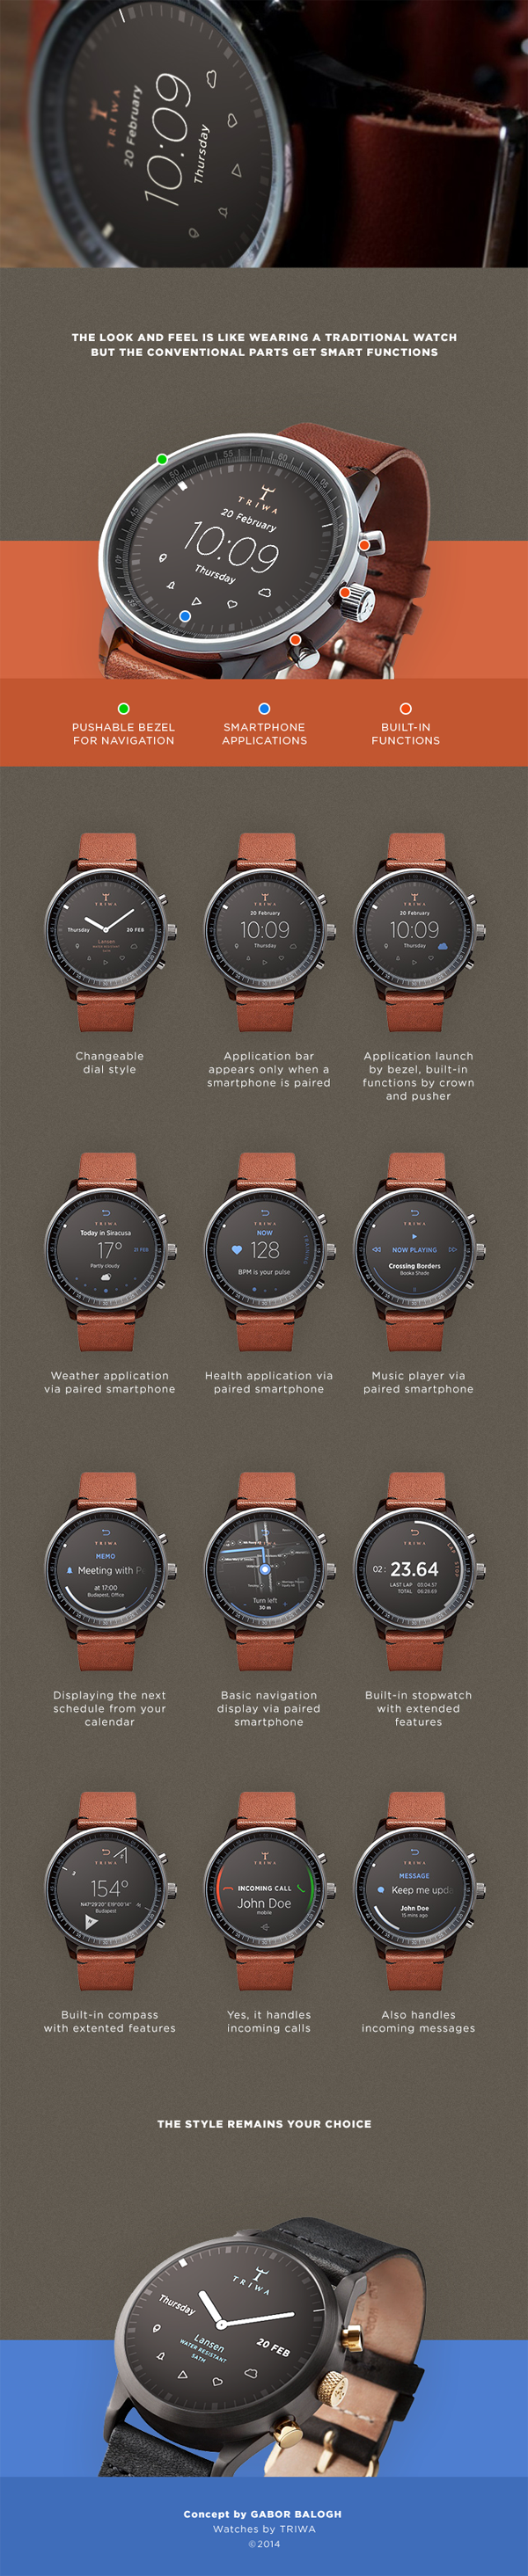 iWatch concept full 2